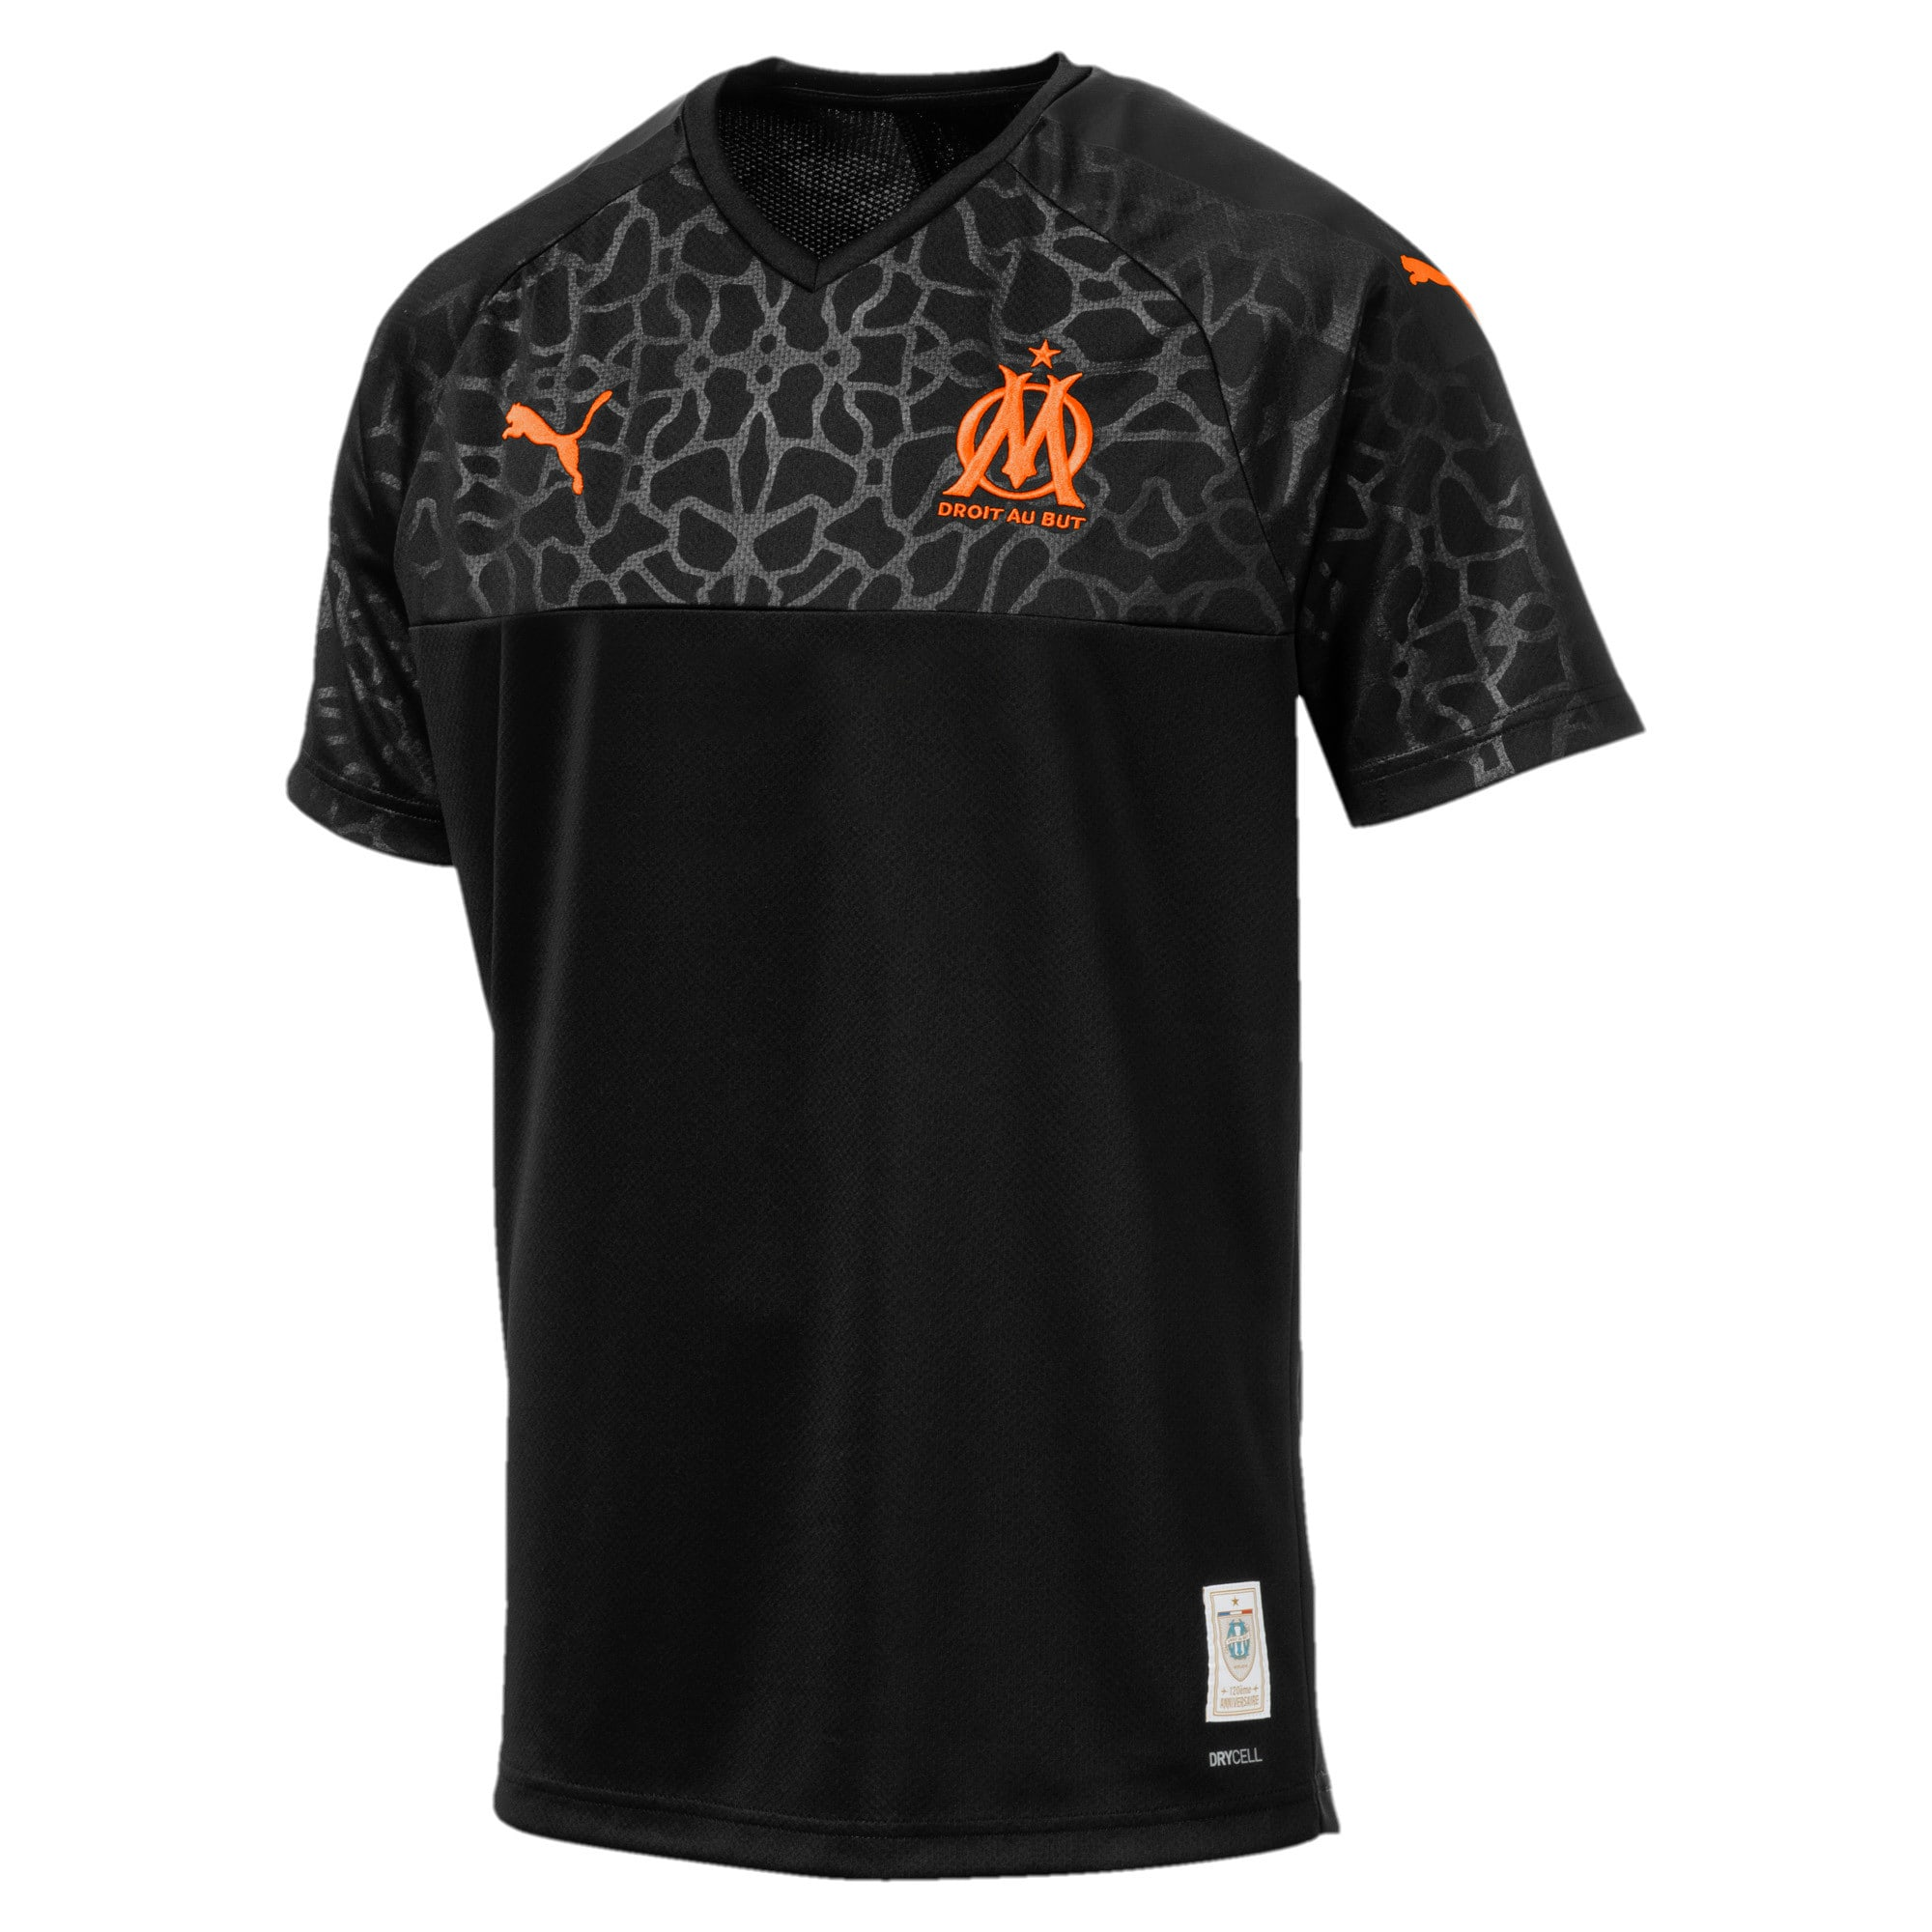 Thumbnail 1 of Olympique de Marseille Men's Replica Third Jersey, Puma Black-Orange Popsicle, medium